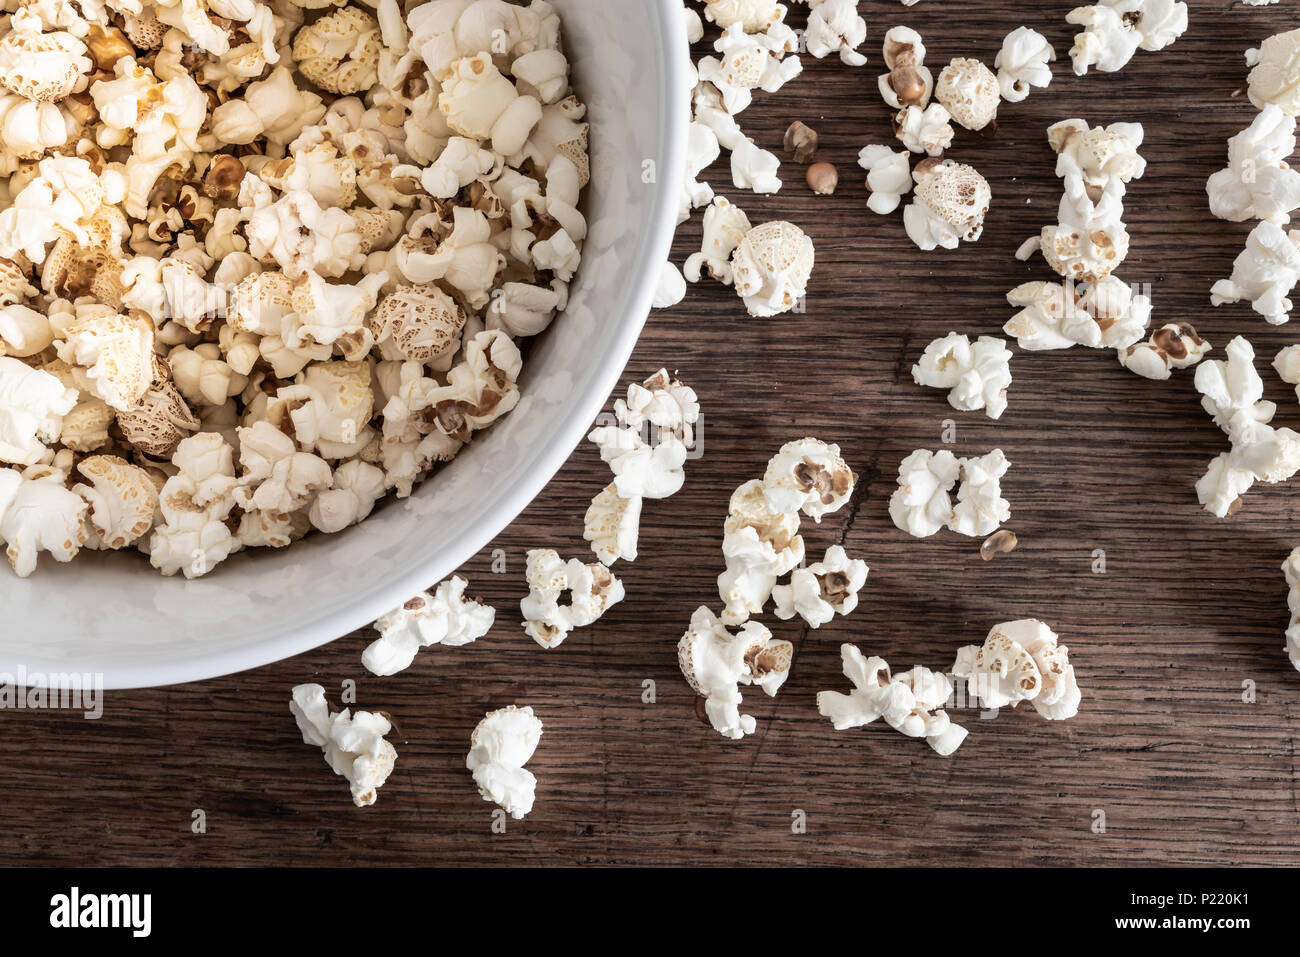 directly above close-up of bowl filled with popcorn on rustic wooden table - Stock Image